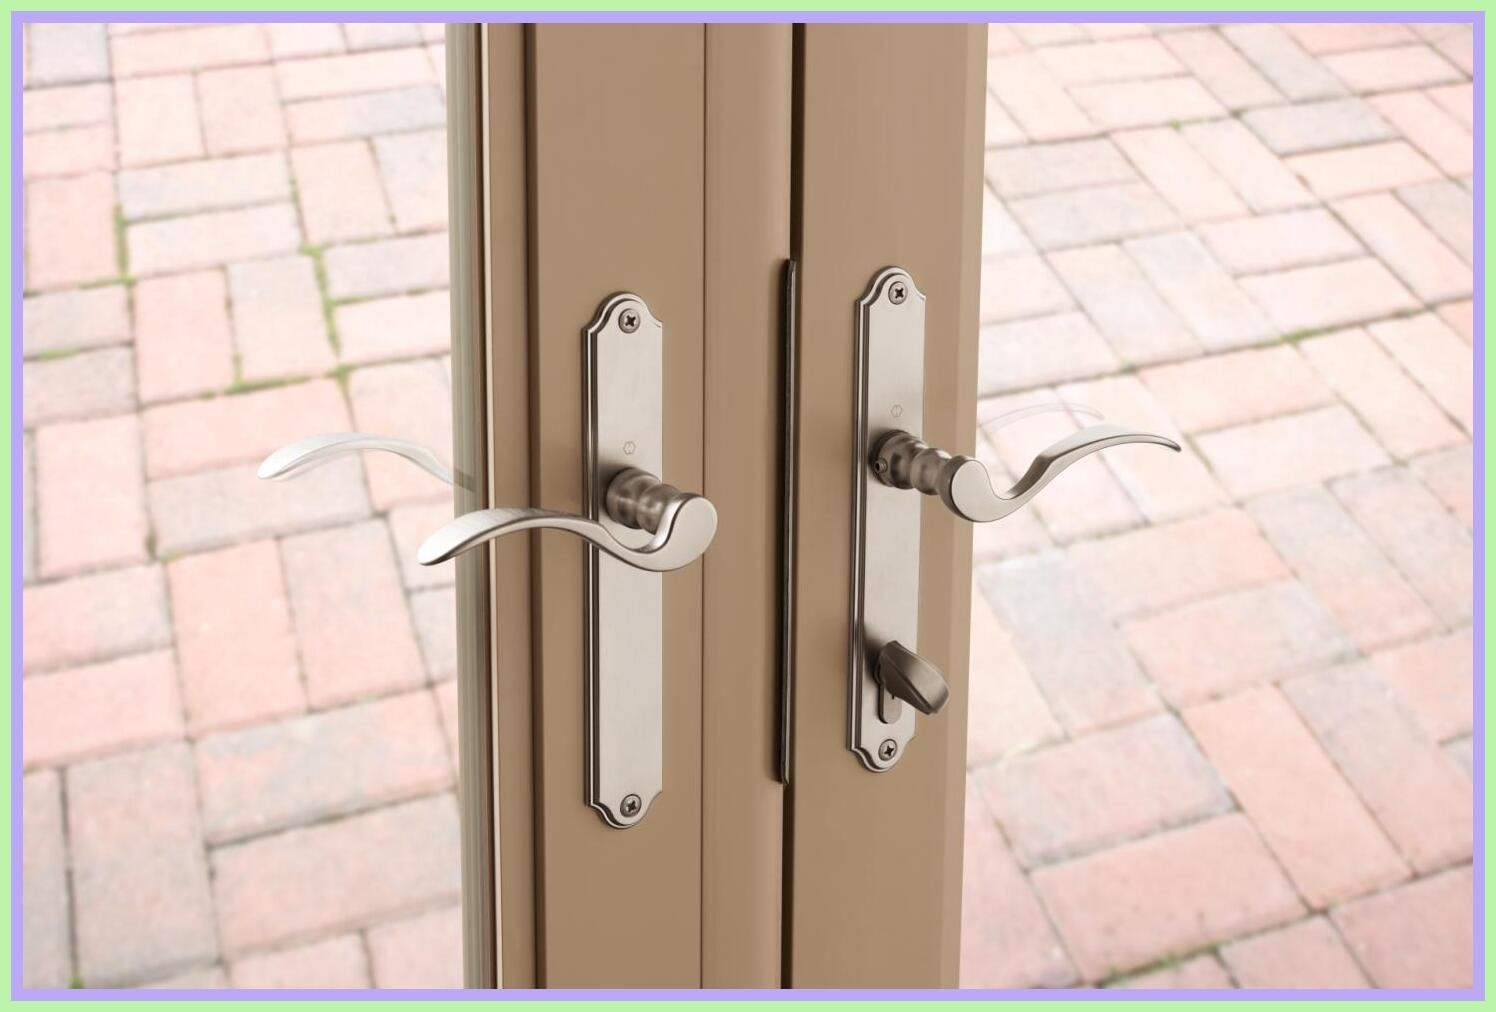 116 Reference Of French Door Patio Lock In 2020 French Doors Exterior French Doors Patio Patio Door Handle